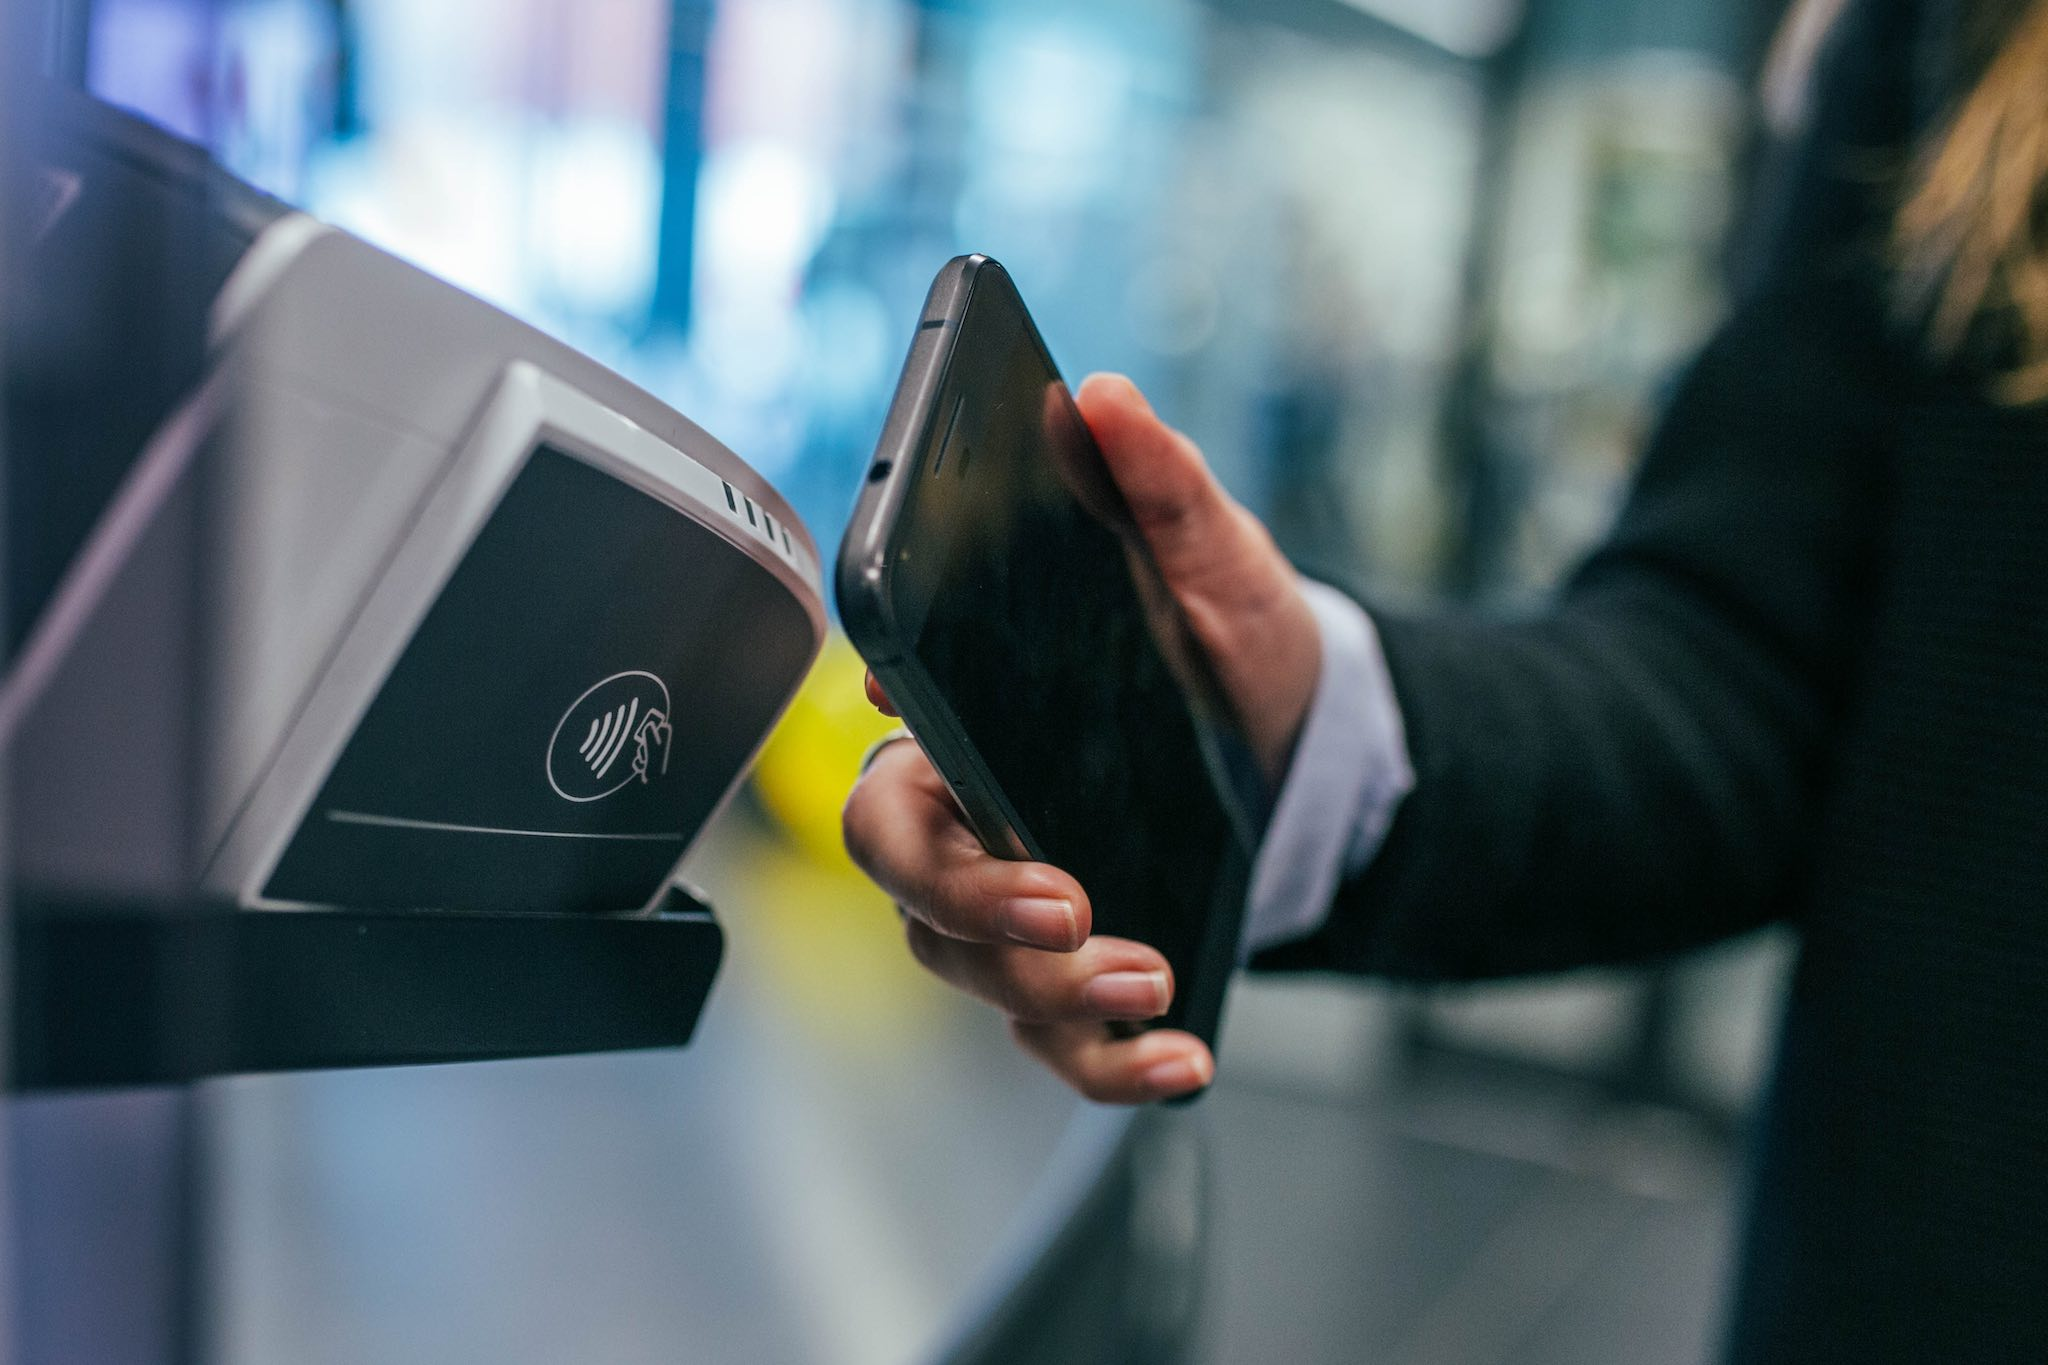 How To Secure Your Digital Wallets and Mobile Payments (Apple Pay, Google Pay, Samsung Pay, PayPal, etc.)?